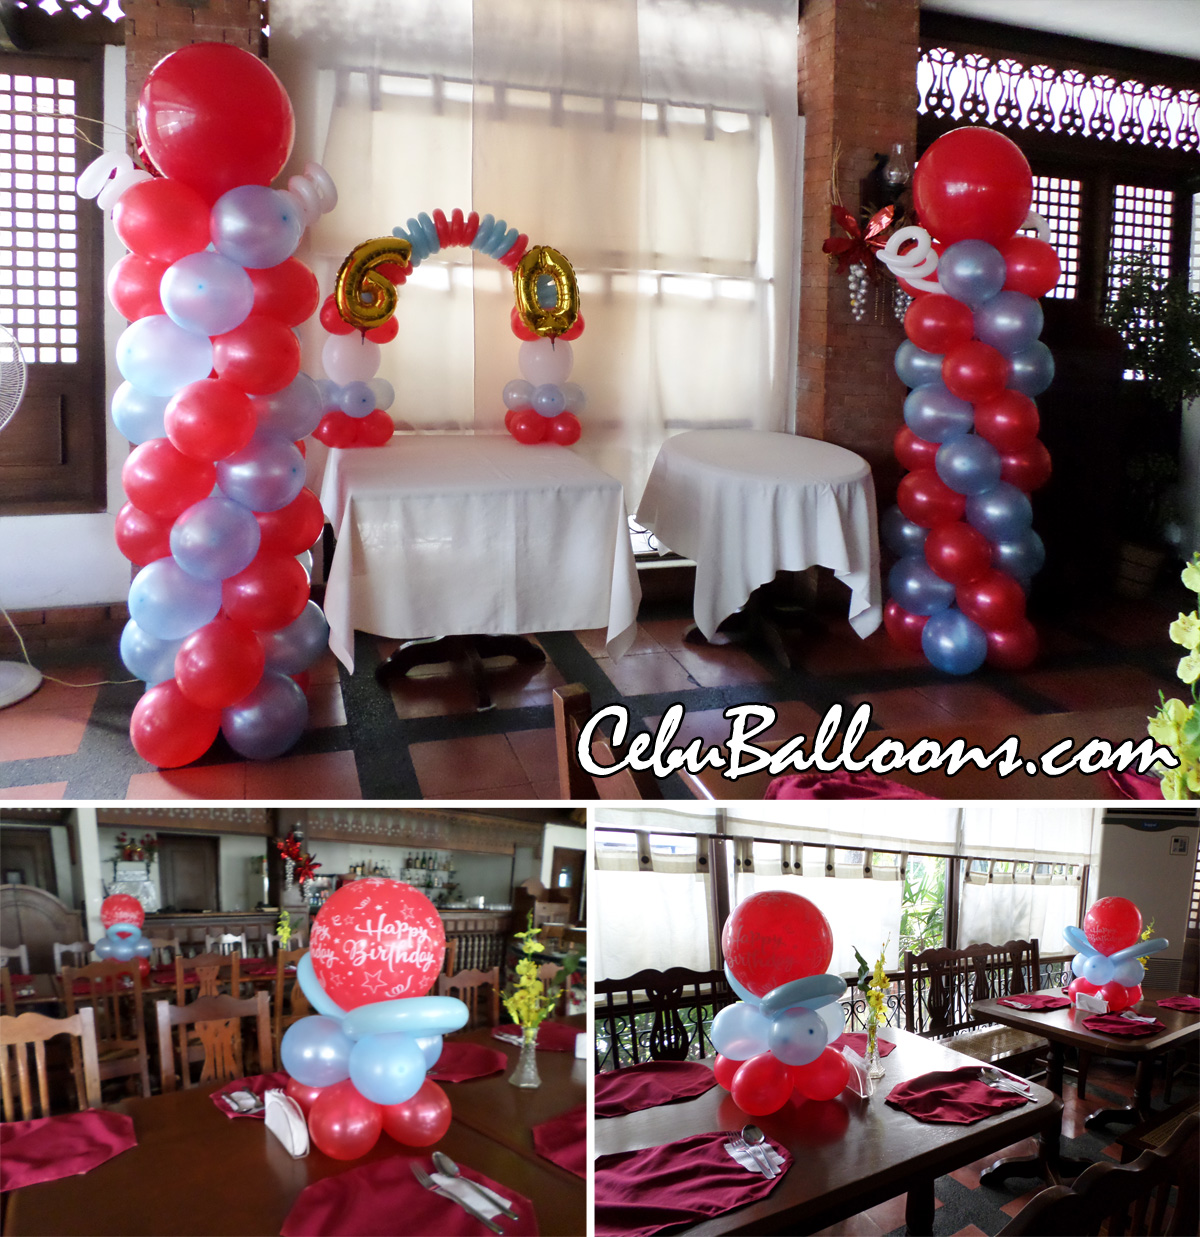 Senior citizen cebu balloons and party supplies for 60th birthday decoration